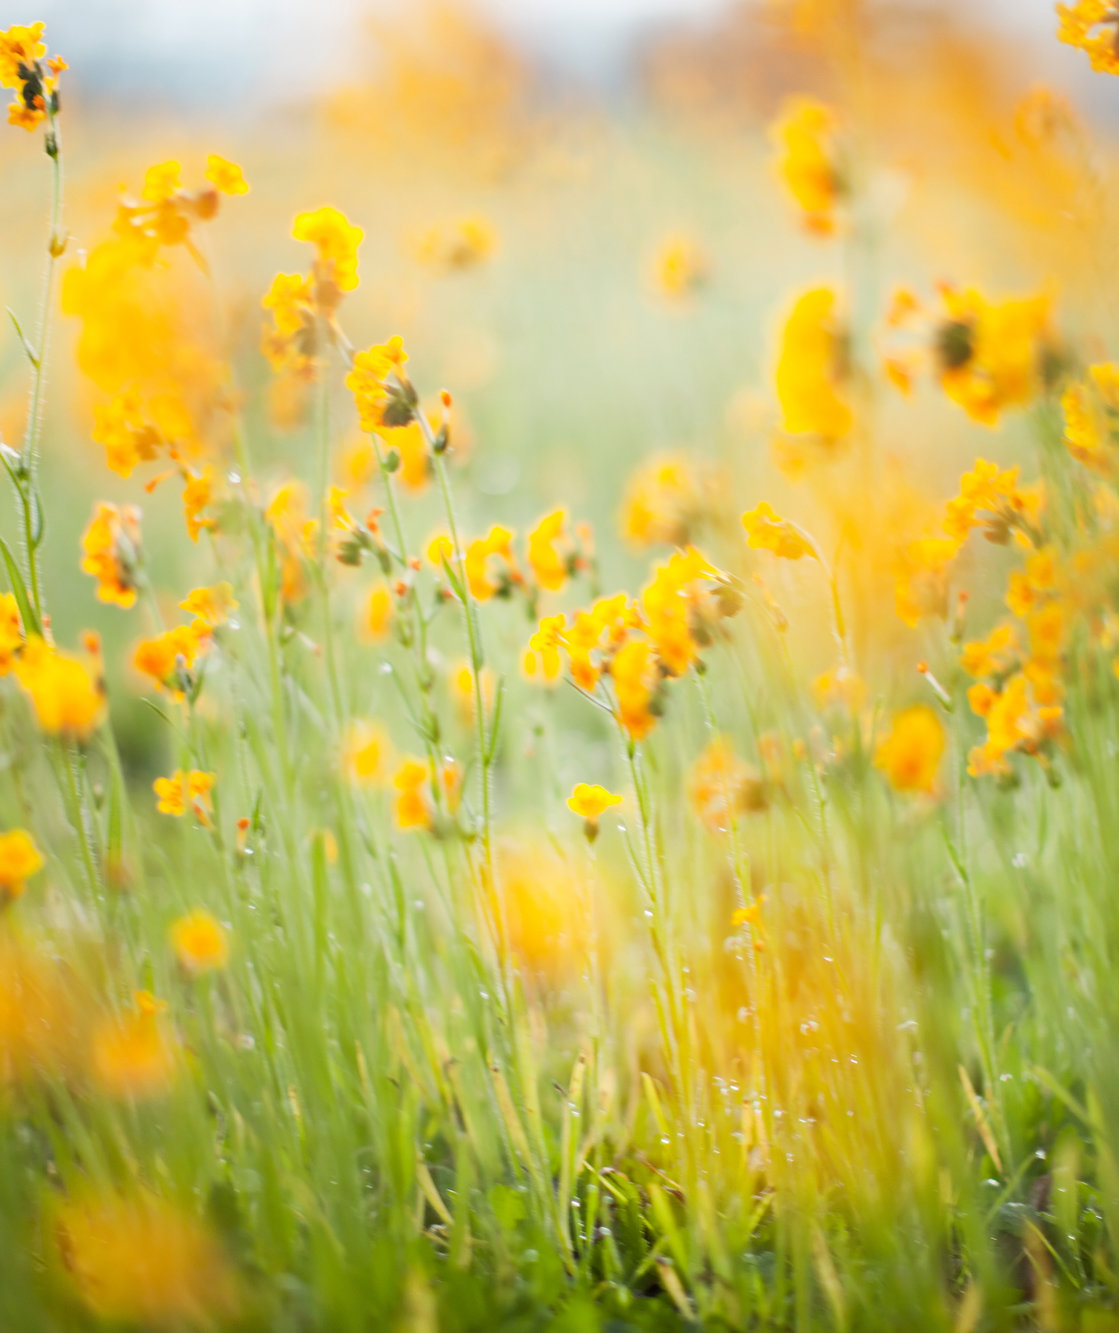 blurry-yellow-flowers